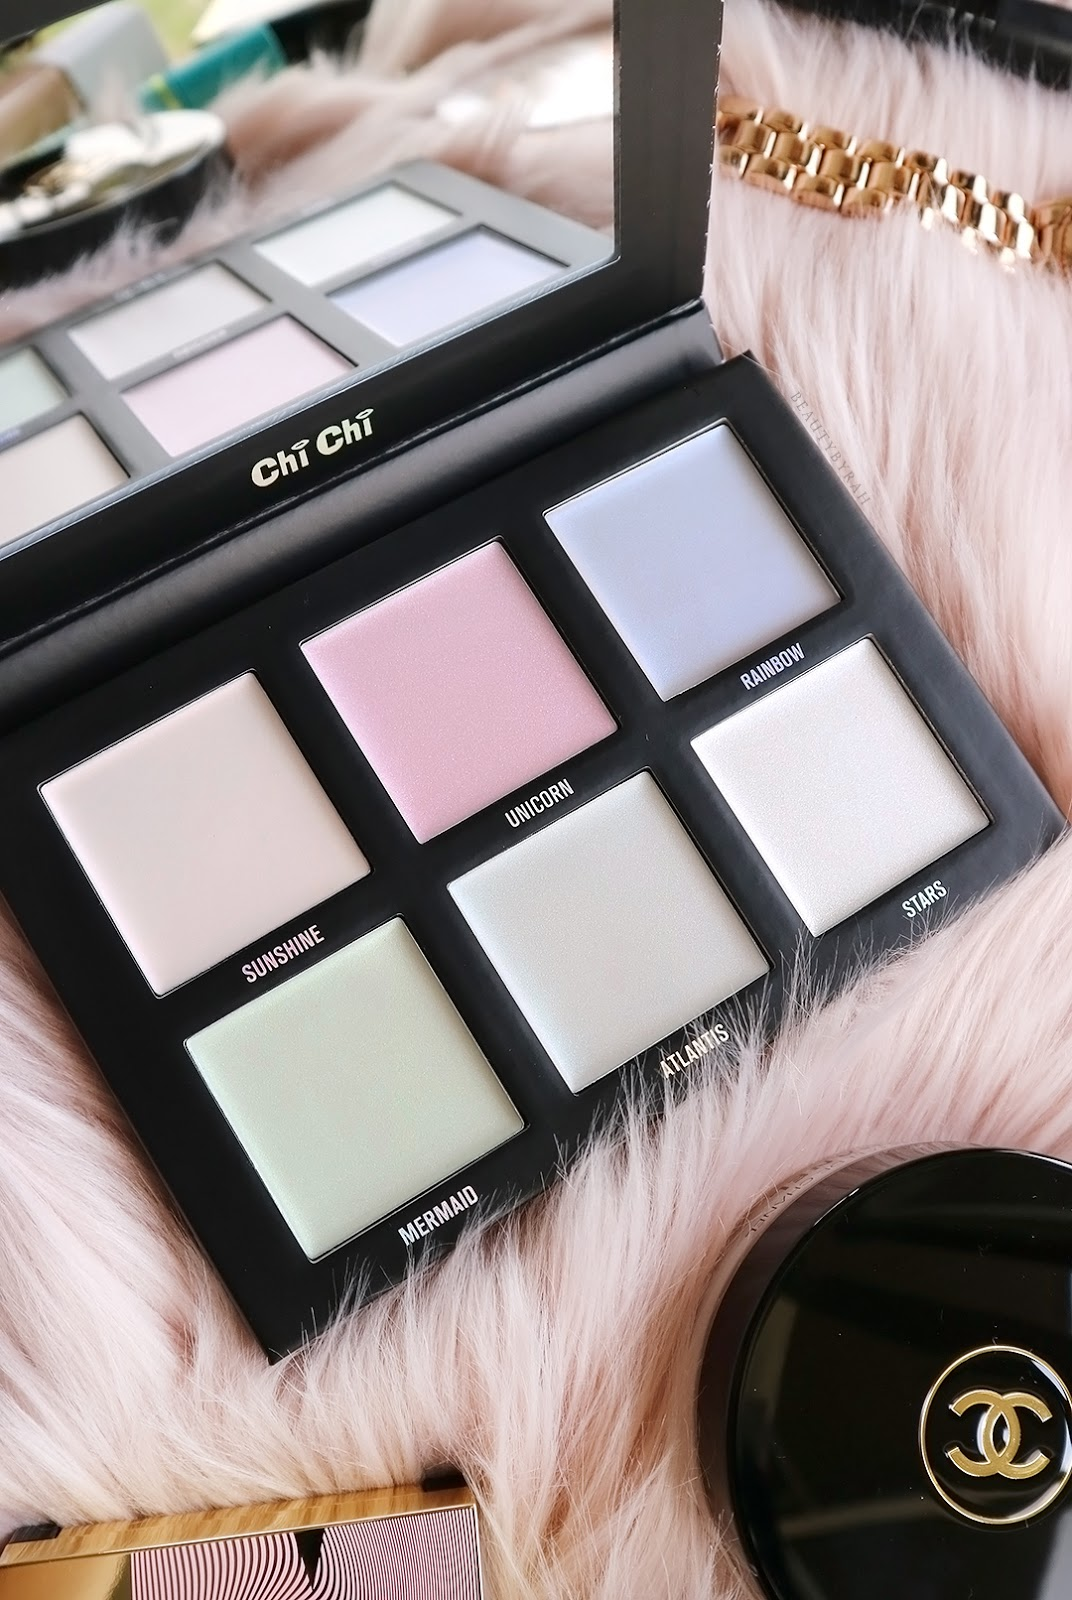 Chi Chi Opalescent Glow Unicorns & Mermaids Cream Highlighter Palette Review and Swatches